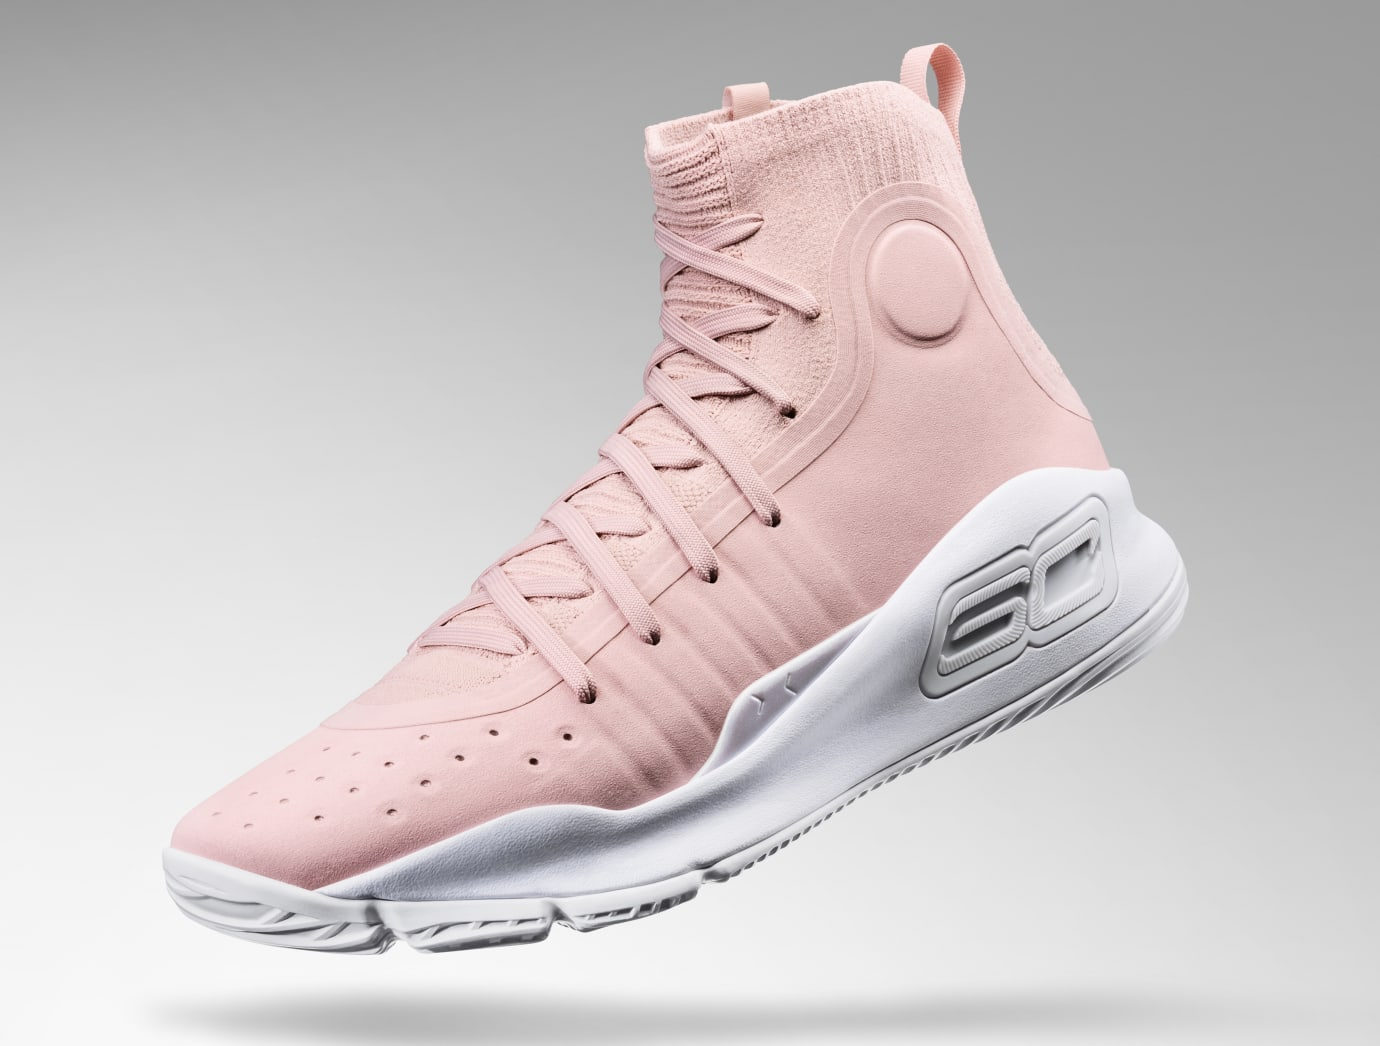 106bdcc2fa64 Under Armour Curry 4  Flushed Pink  Release Date